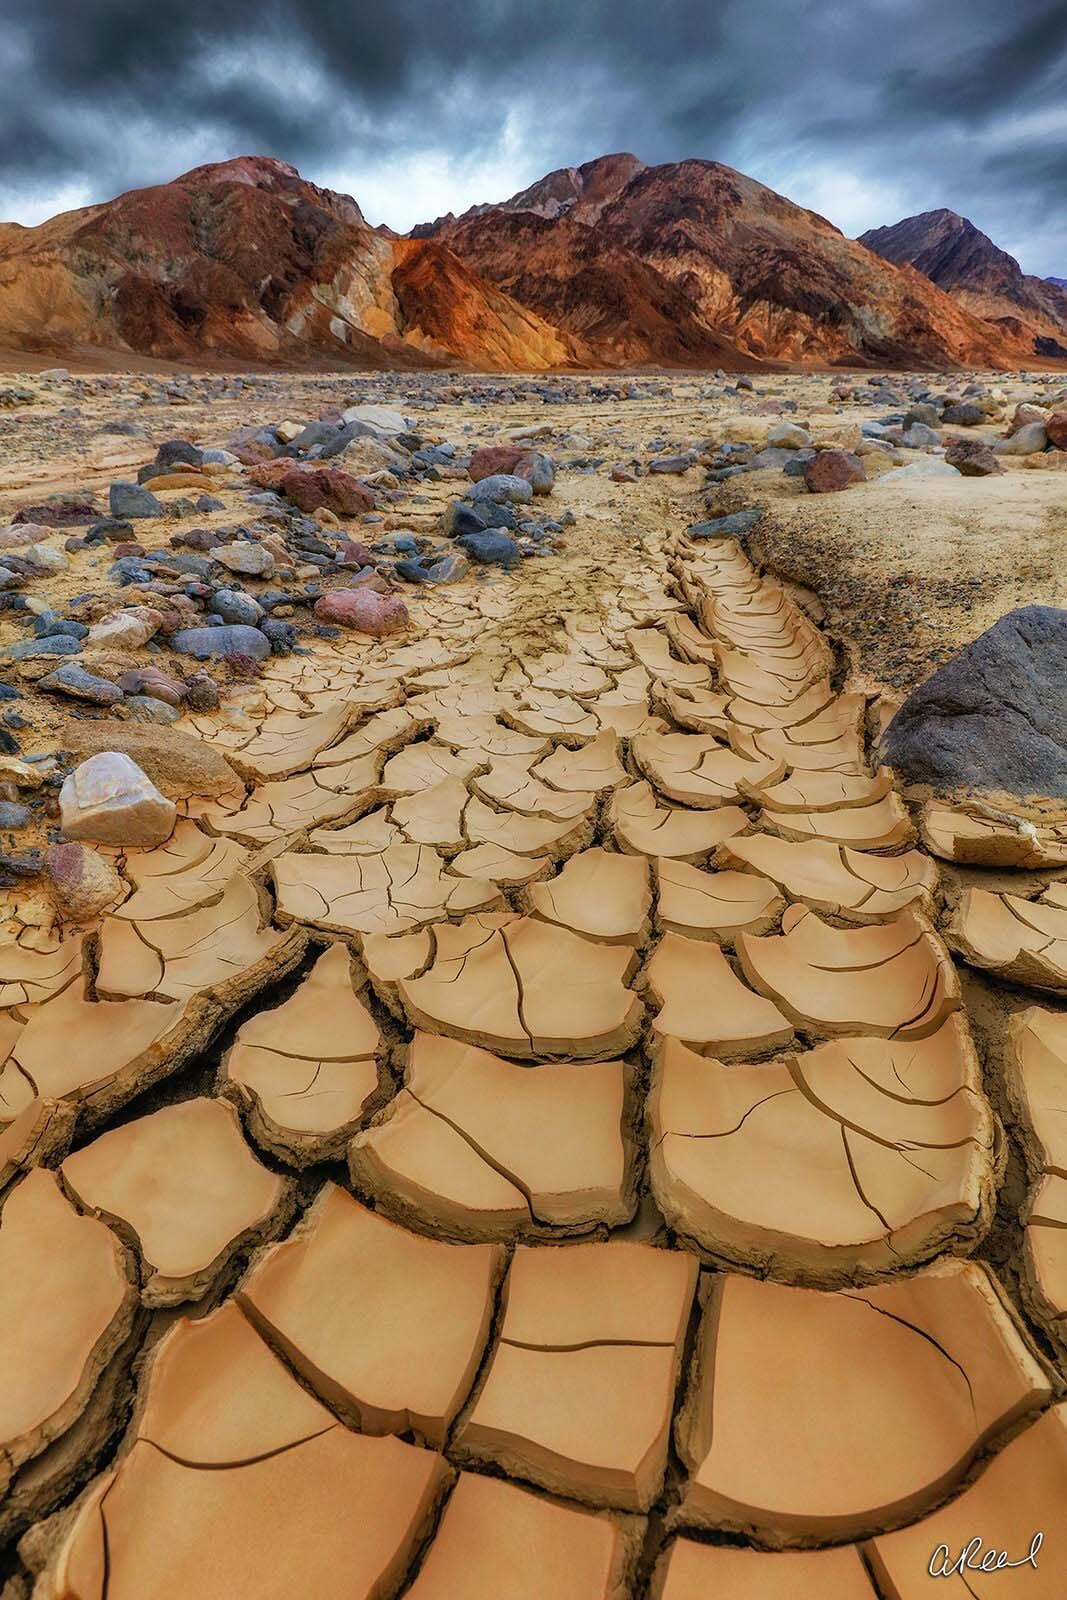 Mudcrack, Crack, Fine Art, Limited Edition, Death Valley National Park, California, photo